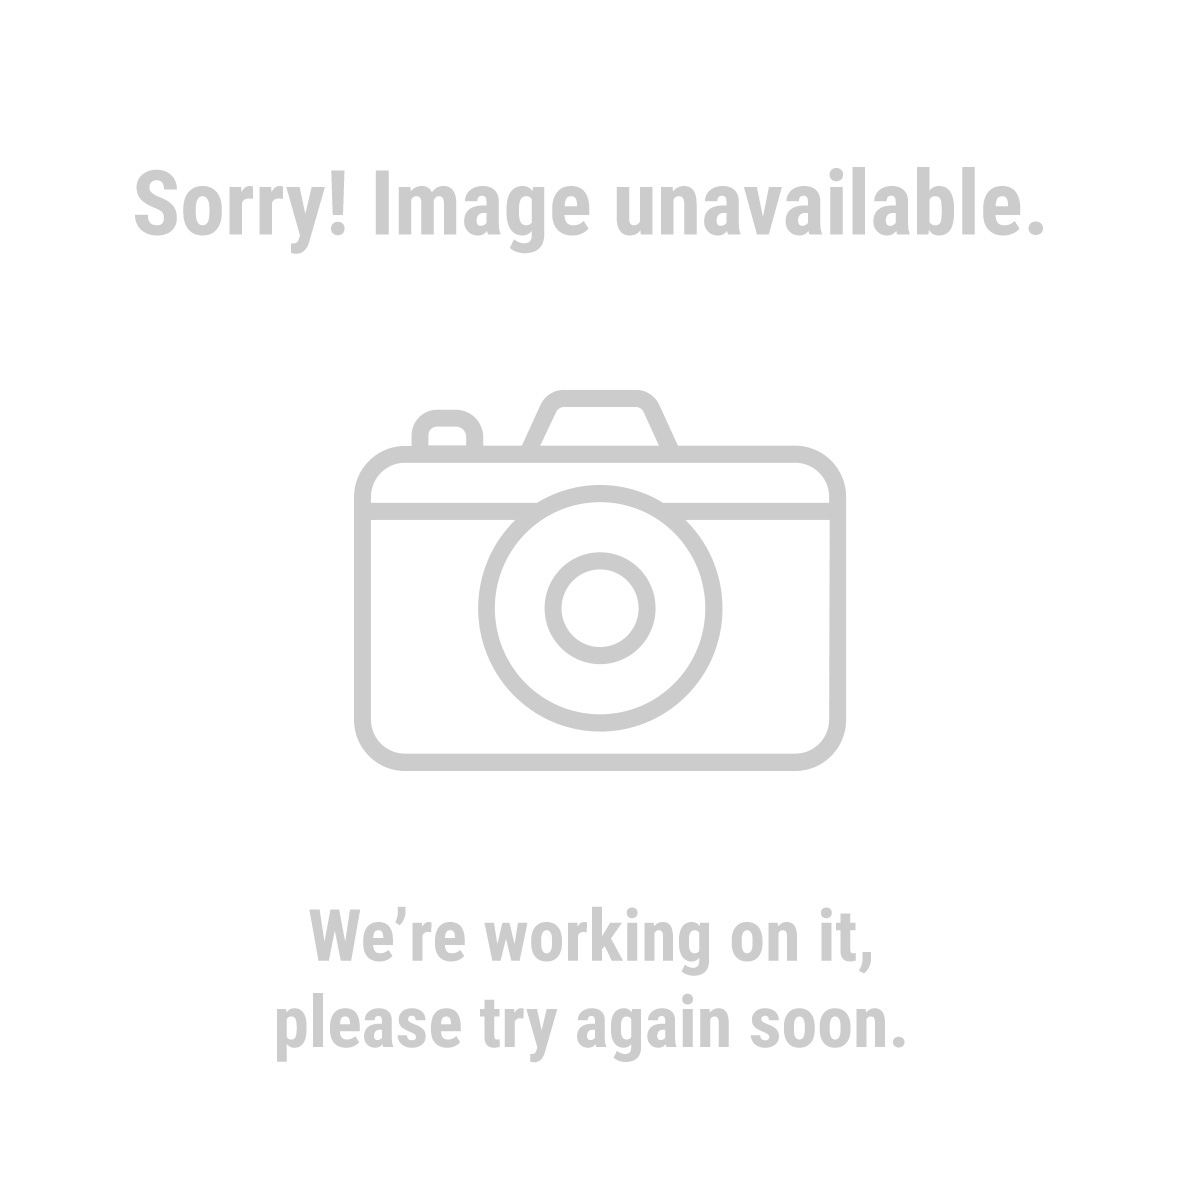 electrician 39 s screwdriver set 7 pc. Black Bedroom Furniture Sets. Home Design Ideas